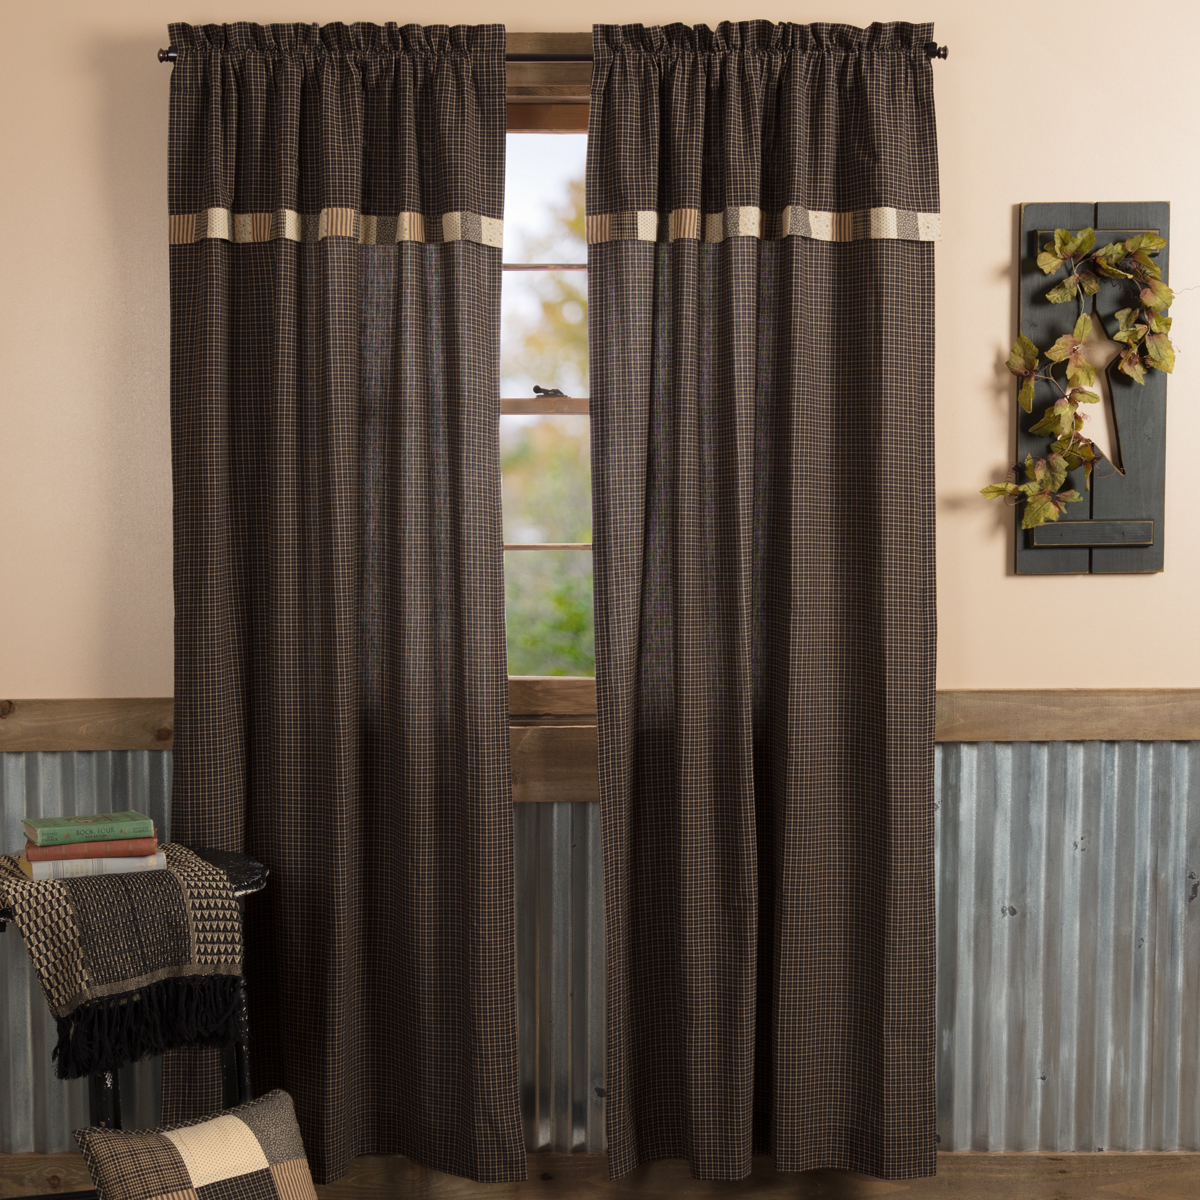 Kettle Grove Panel With Attached Valance Block Border Set